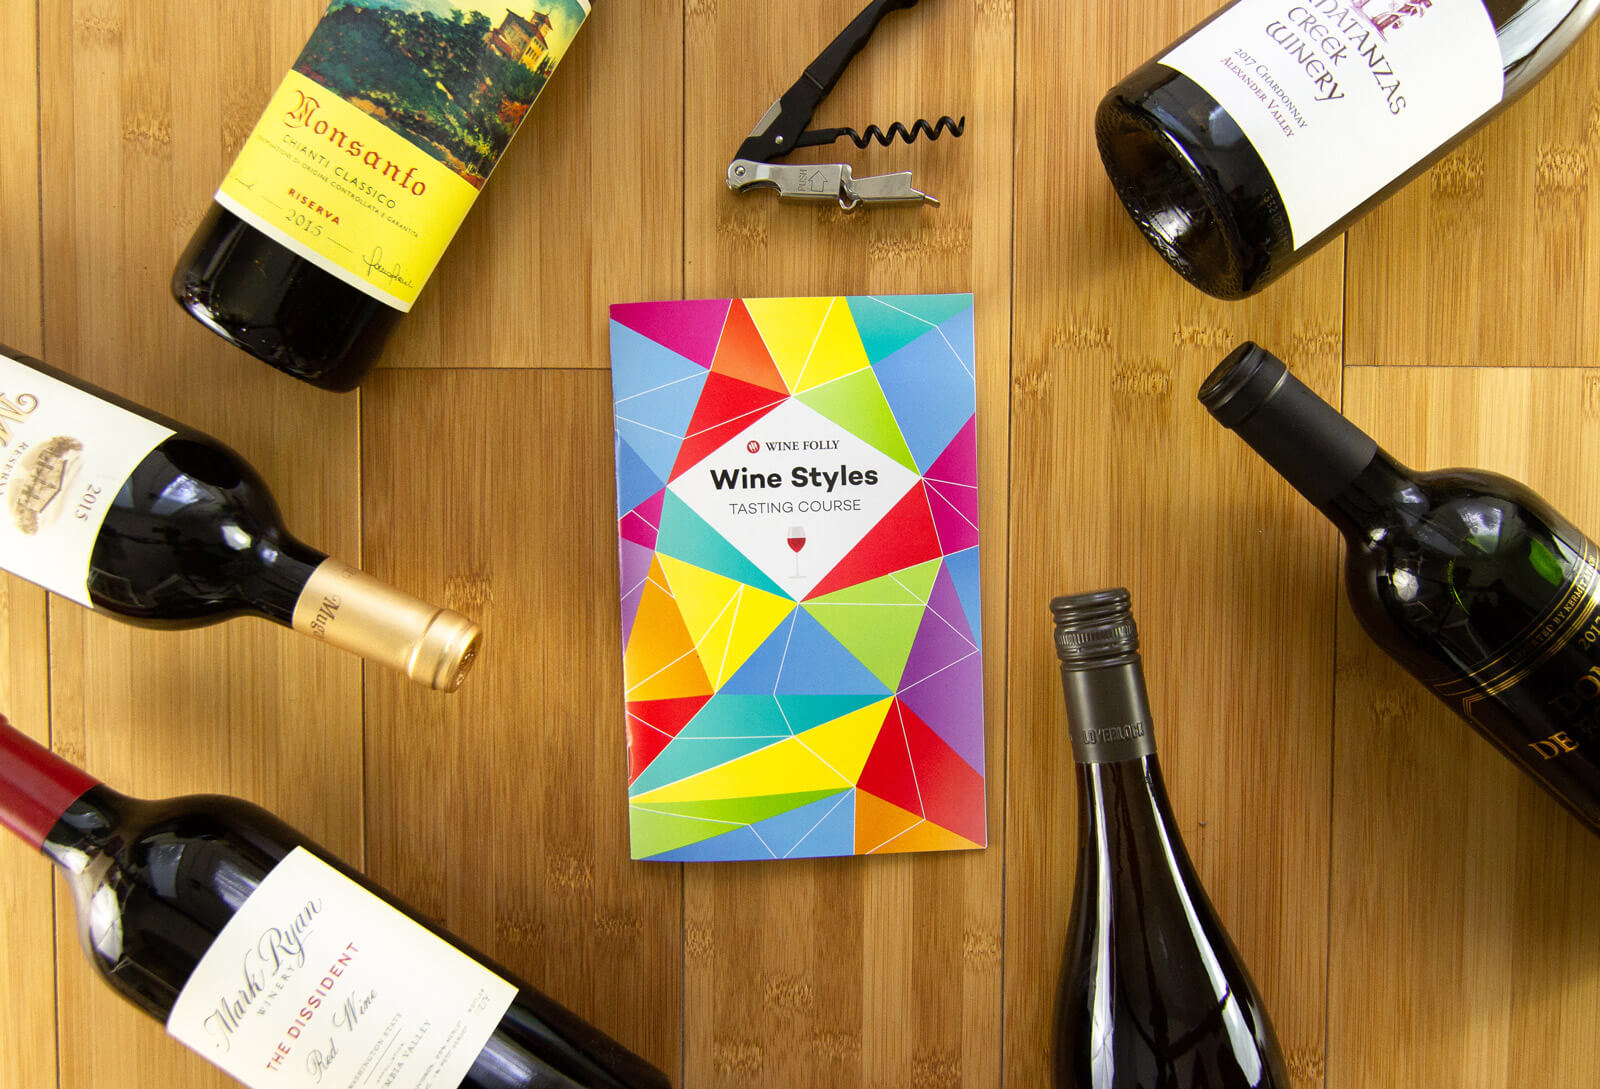 Take a wine course over the holidays - gifts for wine lovers